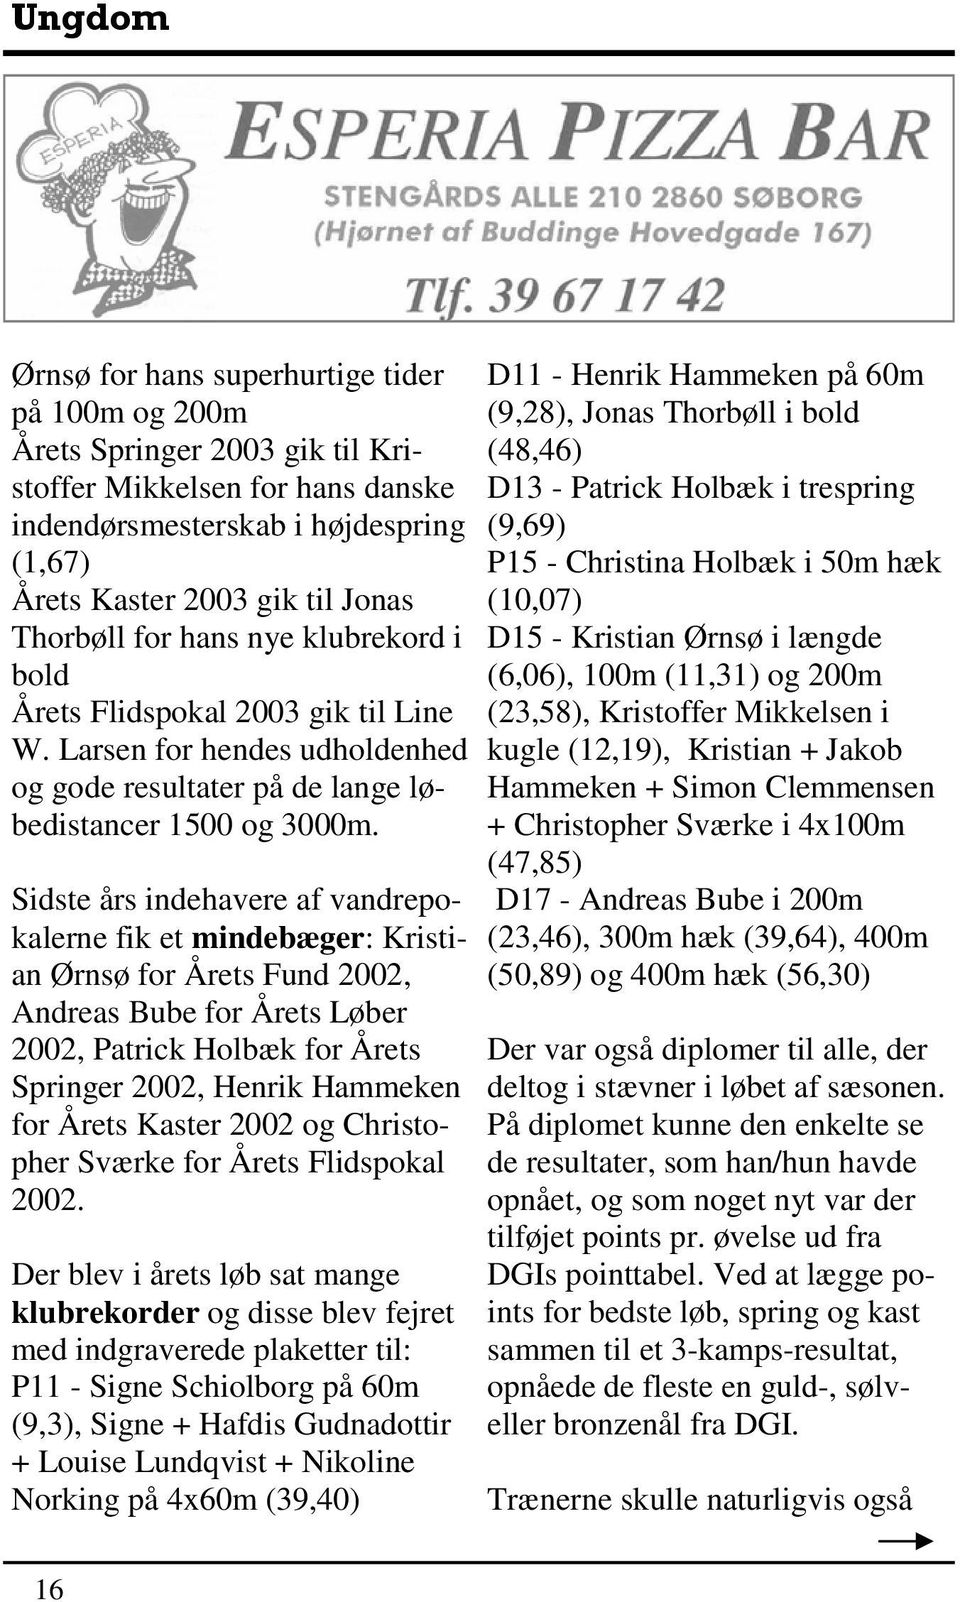 Sidste års indehavere af vandrepokalerne fik et mindebæger: Kristian Ørnsø for Årets Fund 2002, Andreas Bube for Årets Løber 2002, Patrick Holbæk for Årets Springer 2002, Henrik Hammeken for Årets